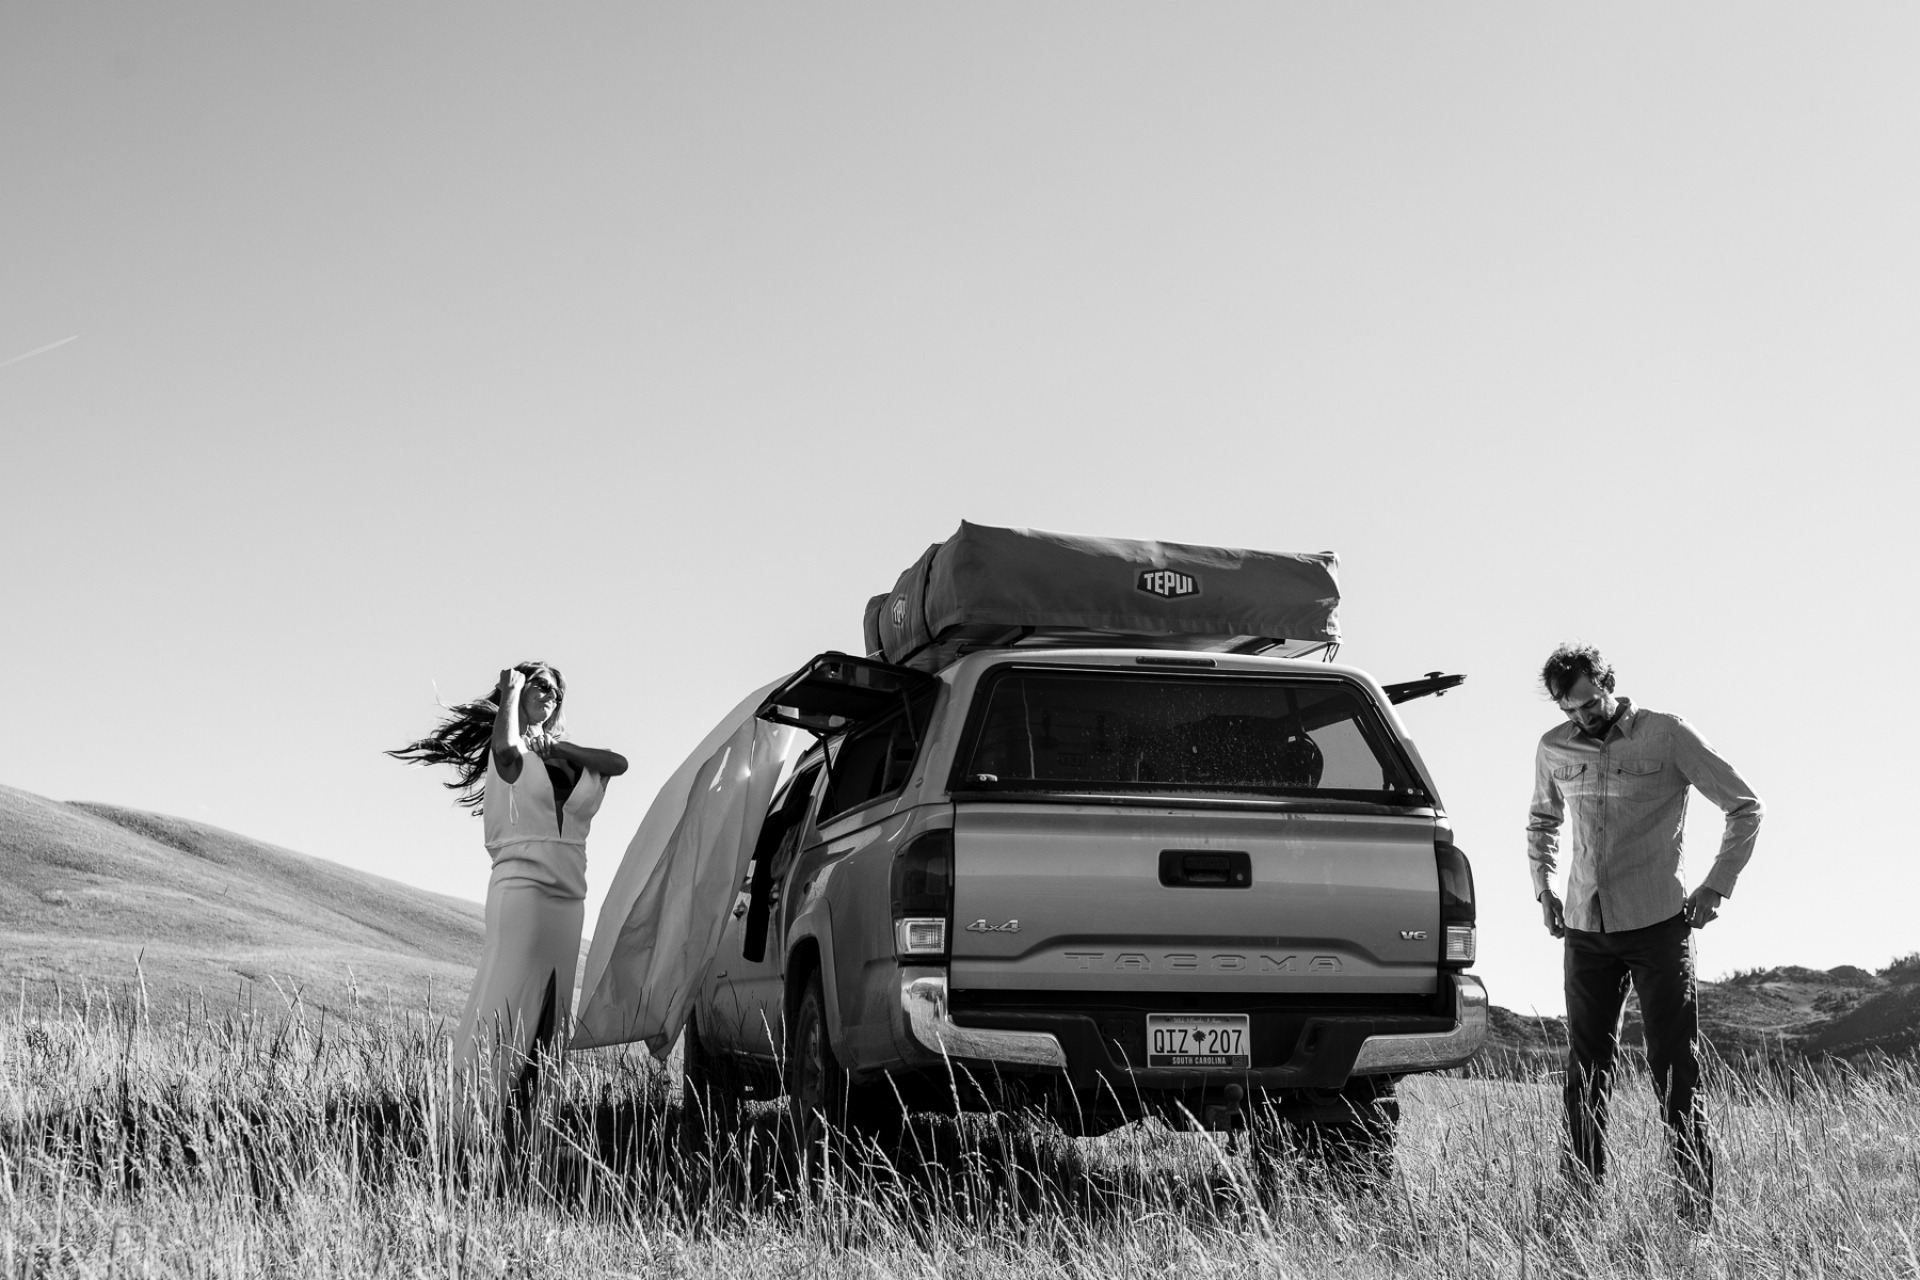 David Clumpner, of Montana, is a wedding photographer for -